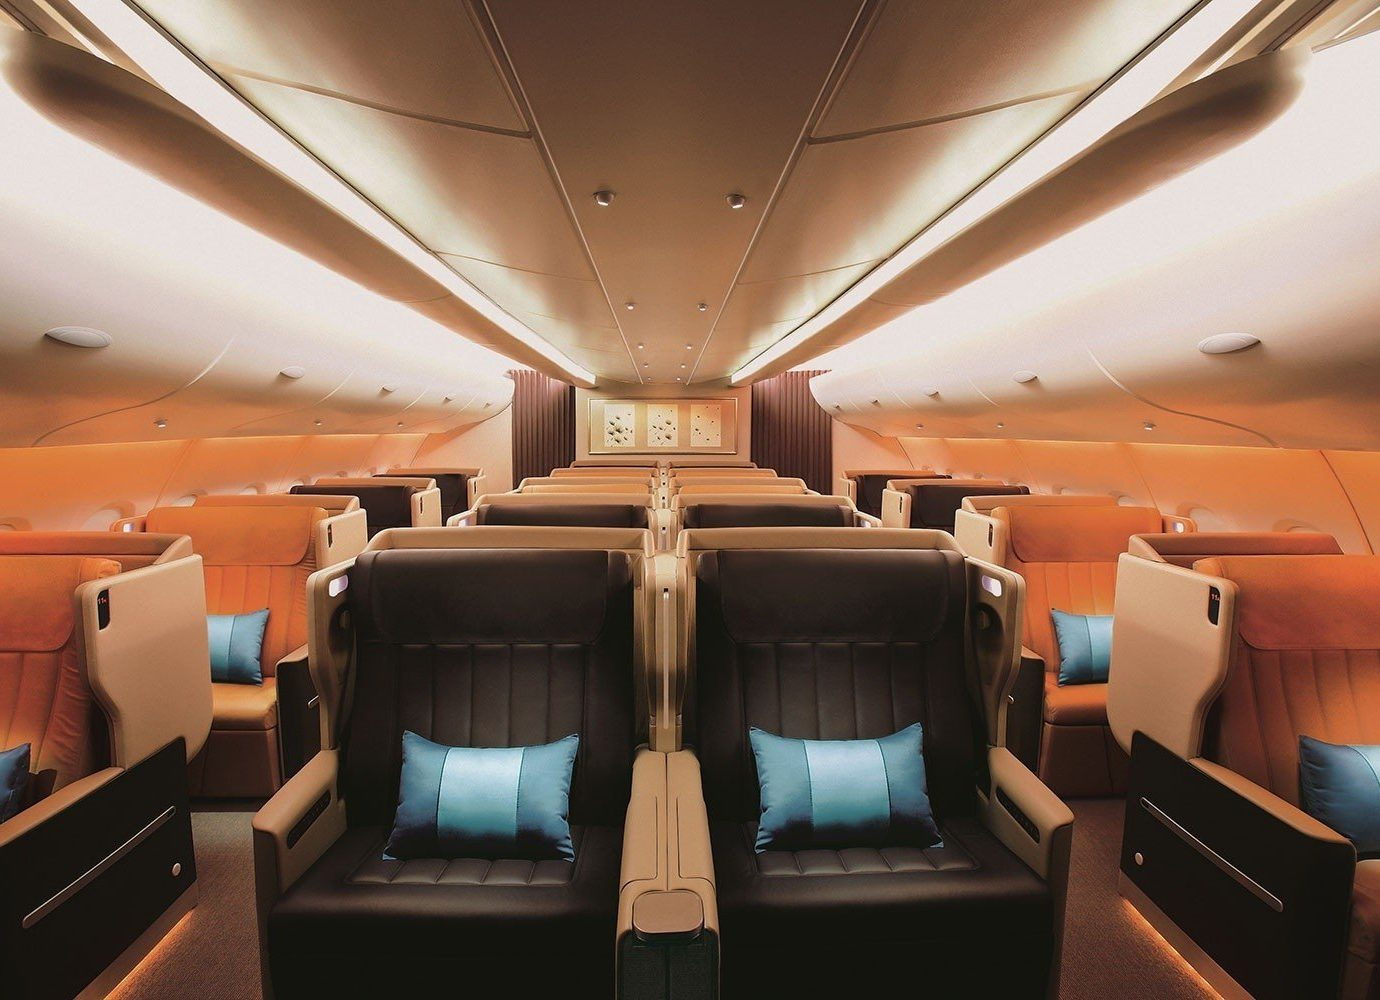 Travel Tips indoor airline vehicle ceiling aircraft aircraft cabin yacht aviation airplane passenger luxury yacht business jet